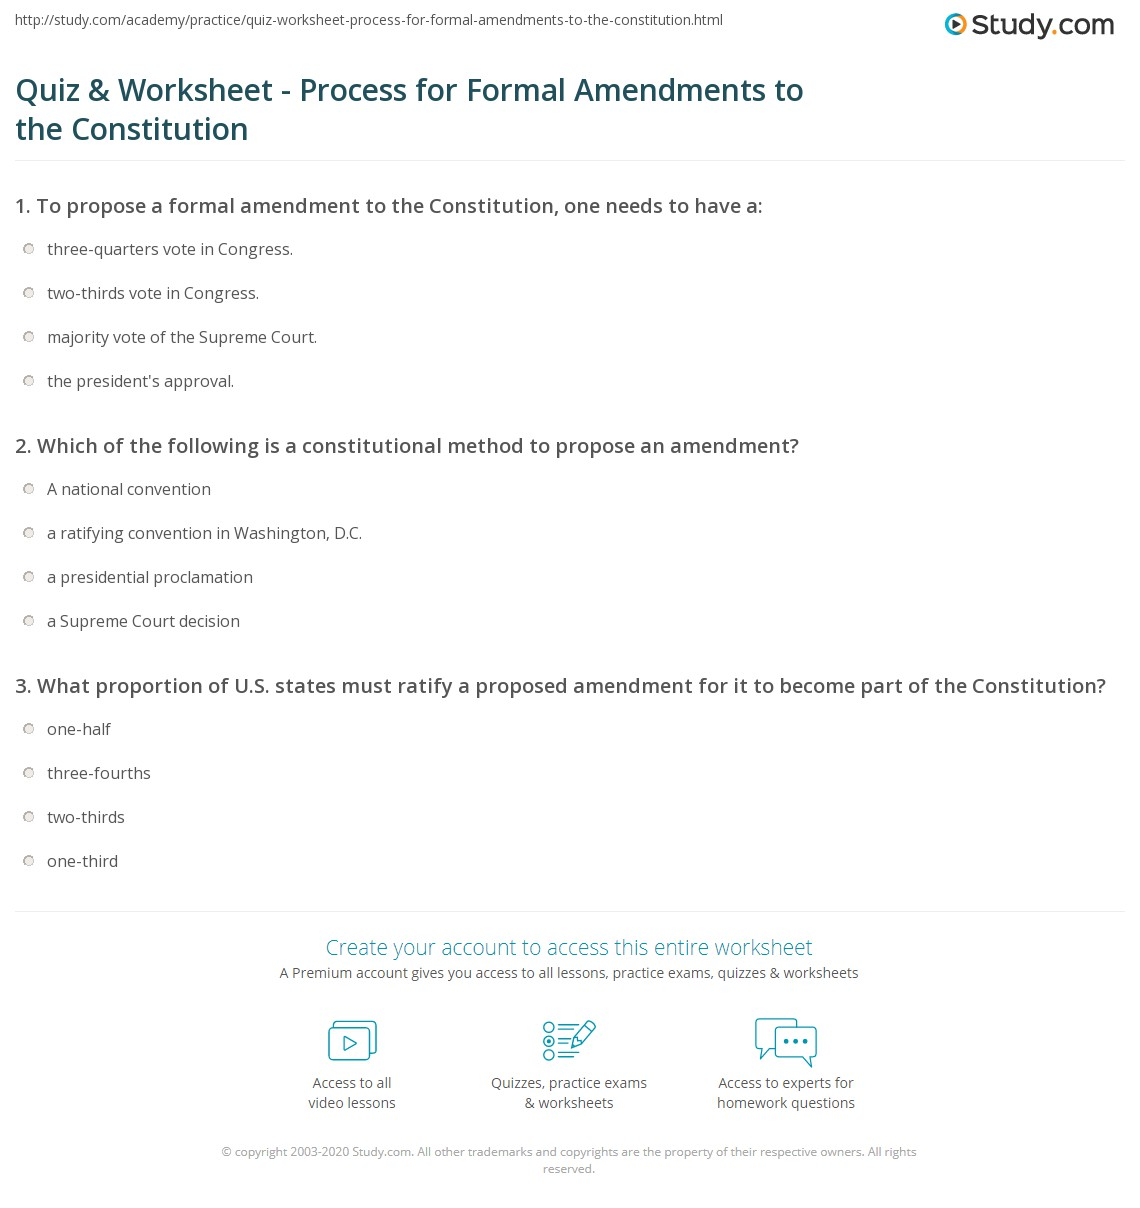 quiz worksheet process for formal amendments to the constitution. Black Bedroom Furniture Sets. Home Design Ideas